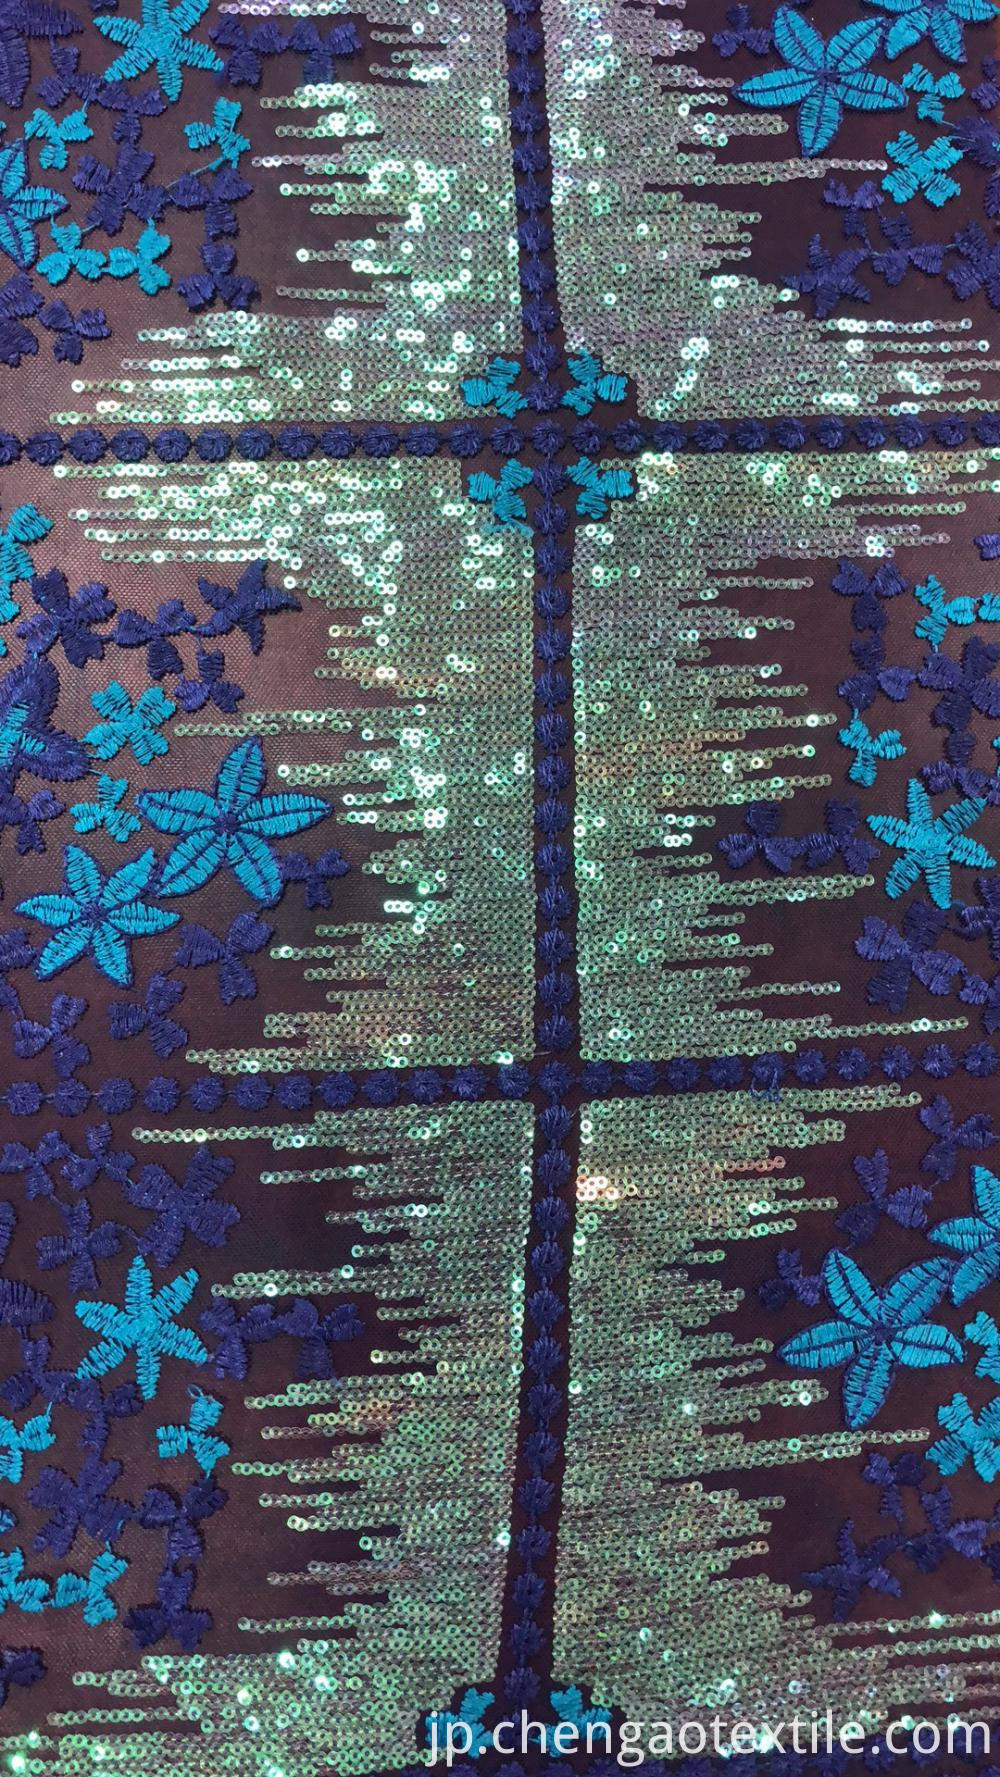 Purple and blue flowers sequin mesh embroider Fabric